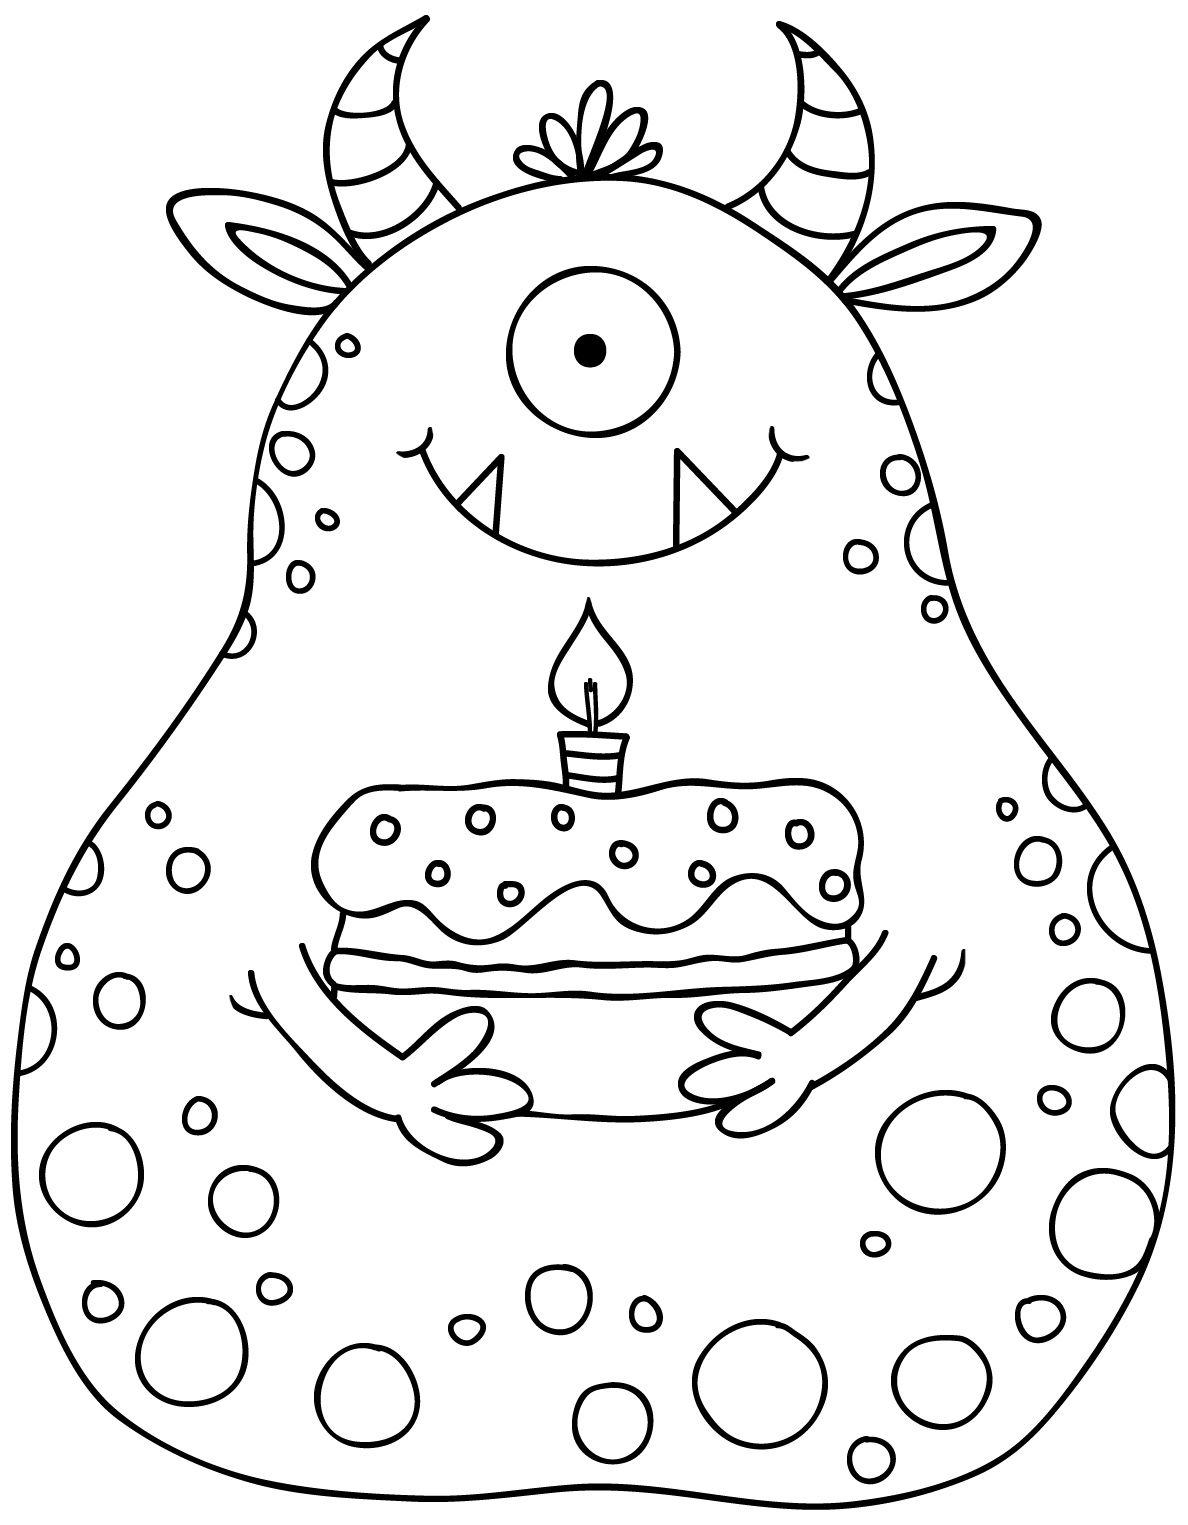 Katehadfielddesigns Google Suche Monster Coloring Pages Monster Quilt Digi Stamps